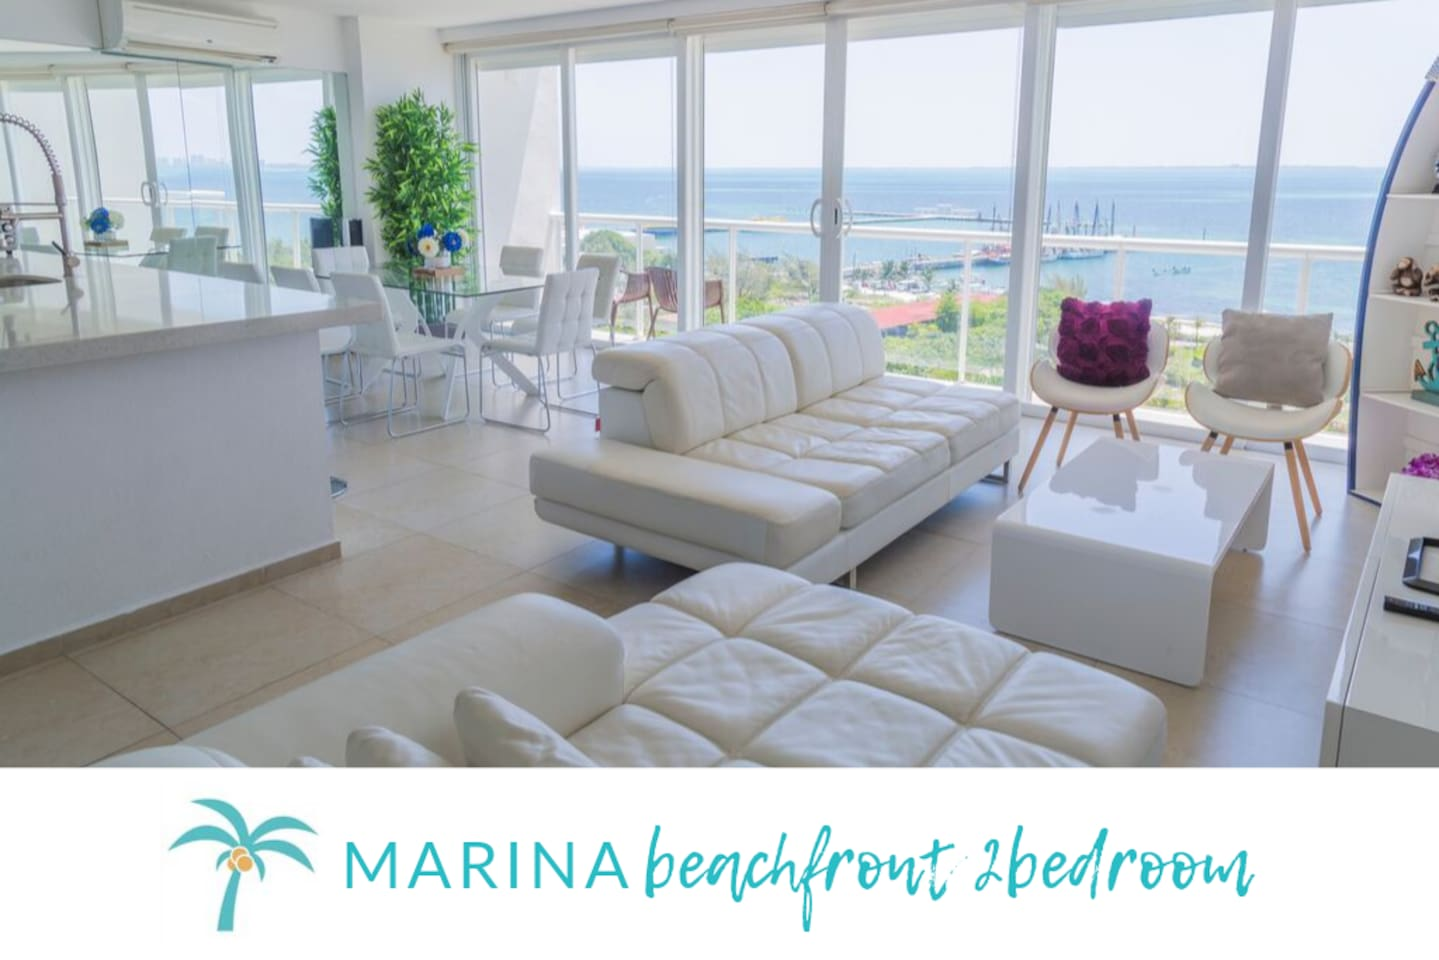 * MARINA-  Beachfront 2 BDR-Modern apartment in Cancún with ocean view*